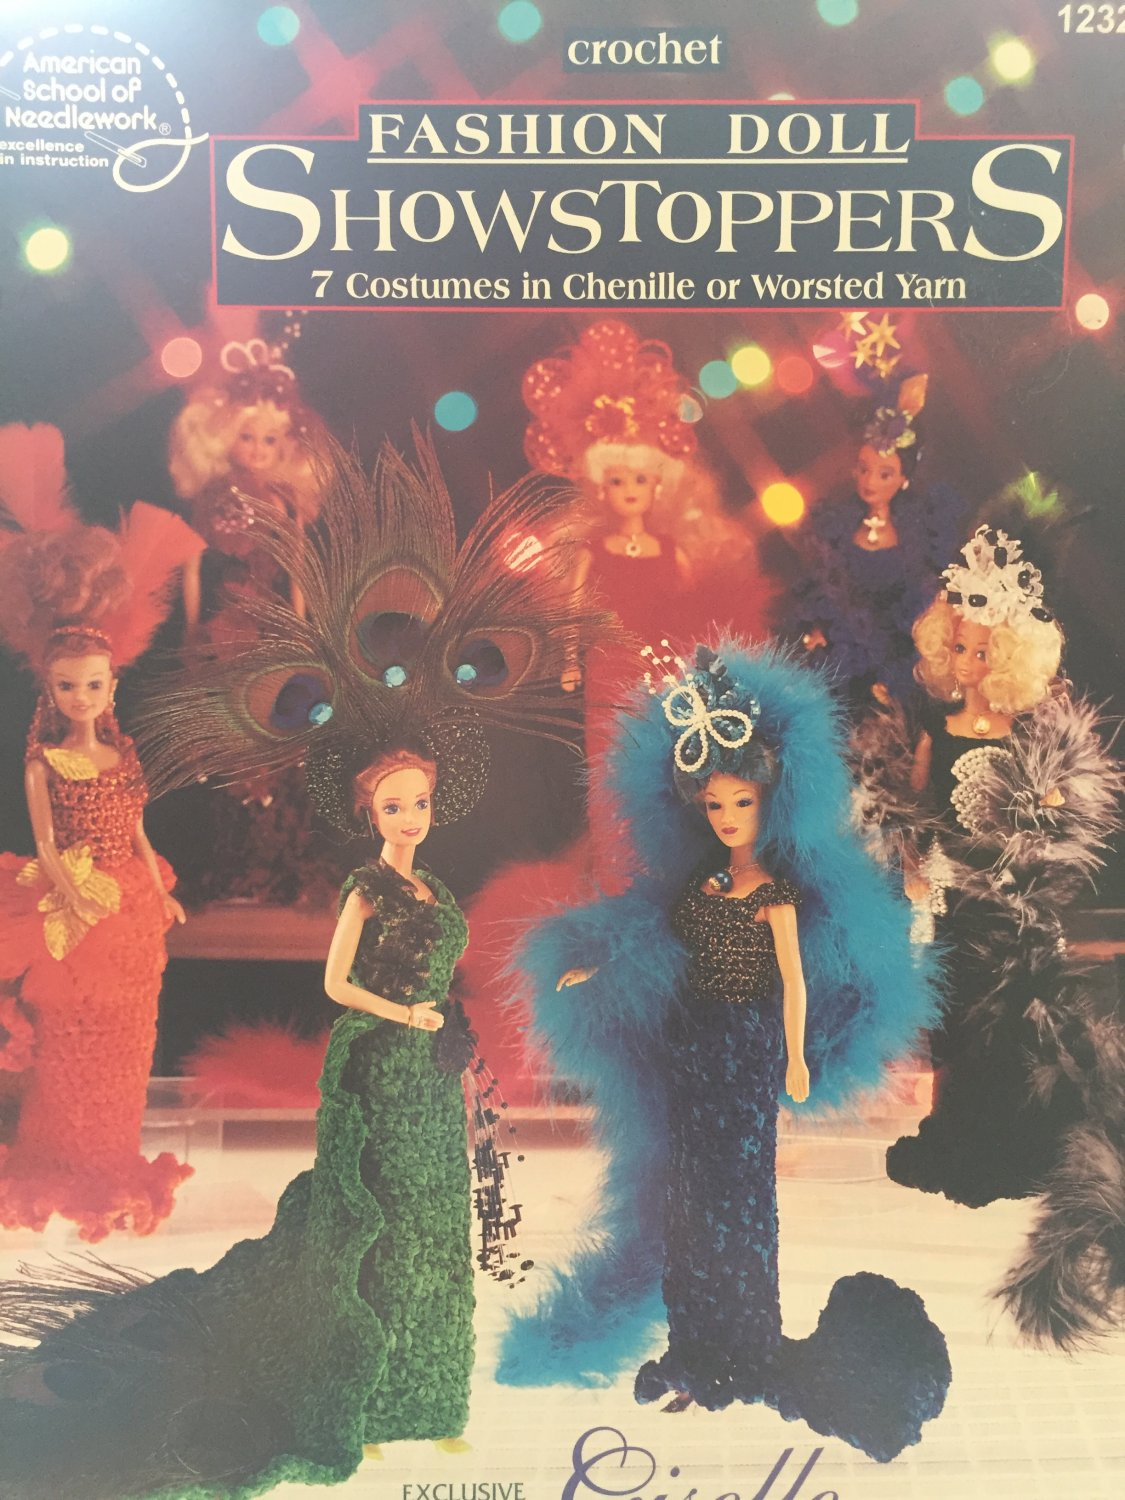 Showstoppers Fasnion Doll gowns American School of Needlework, 1232 Crochet pattern